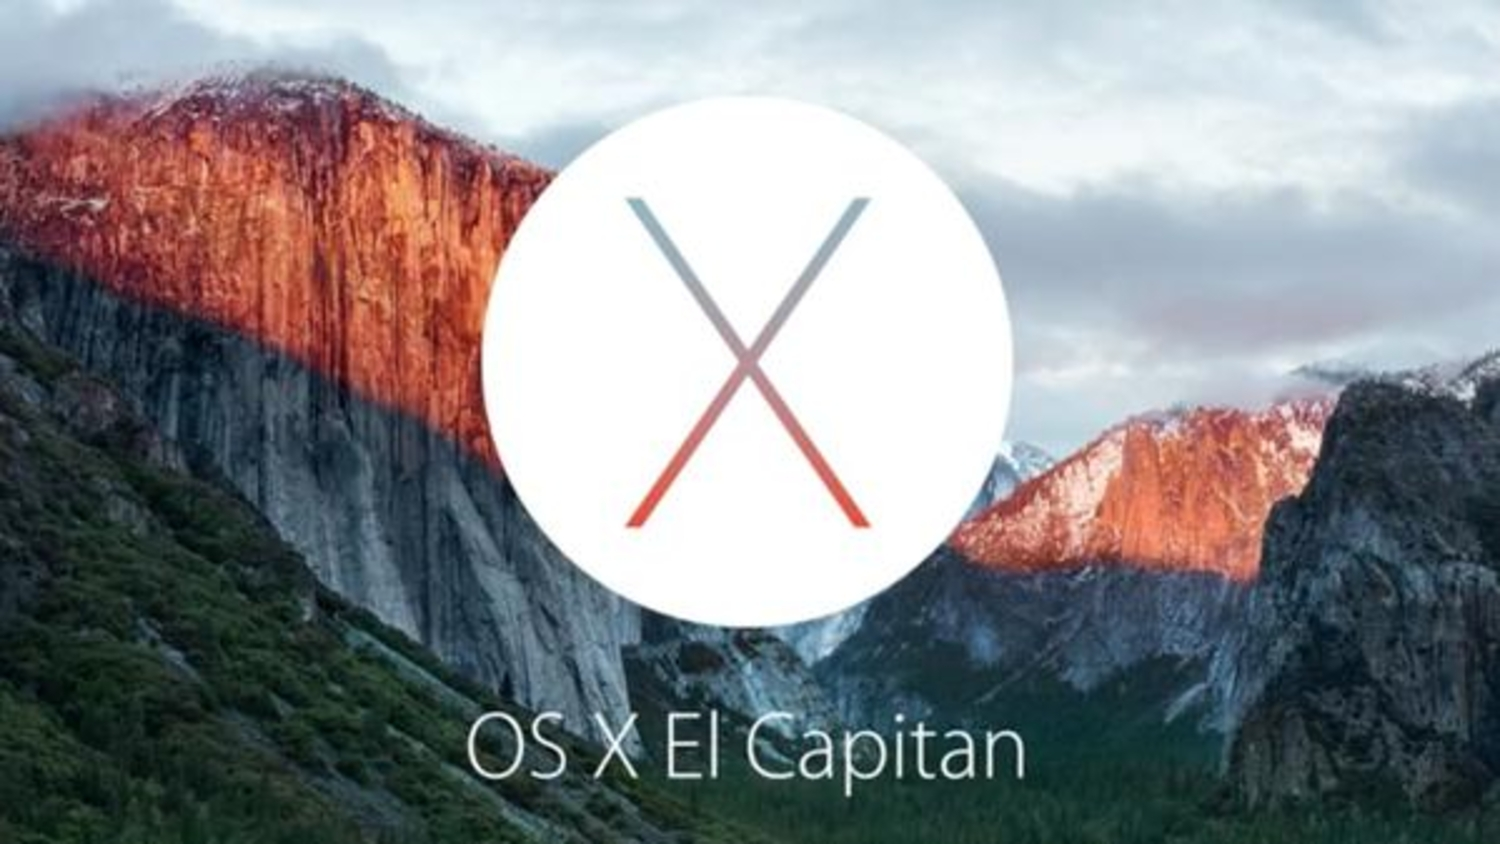 Apple's Brand New OS: El Capitan Is A Bit Of A Bummer